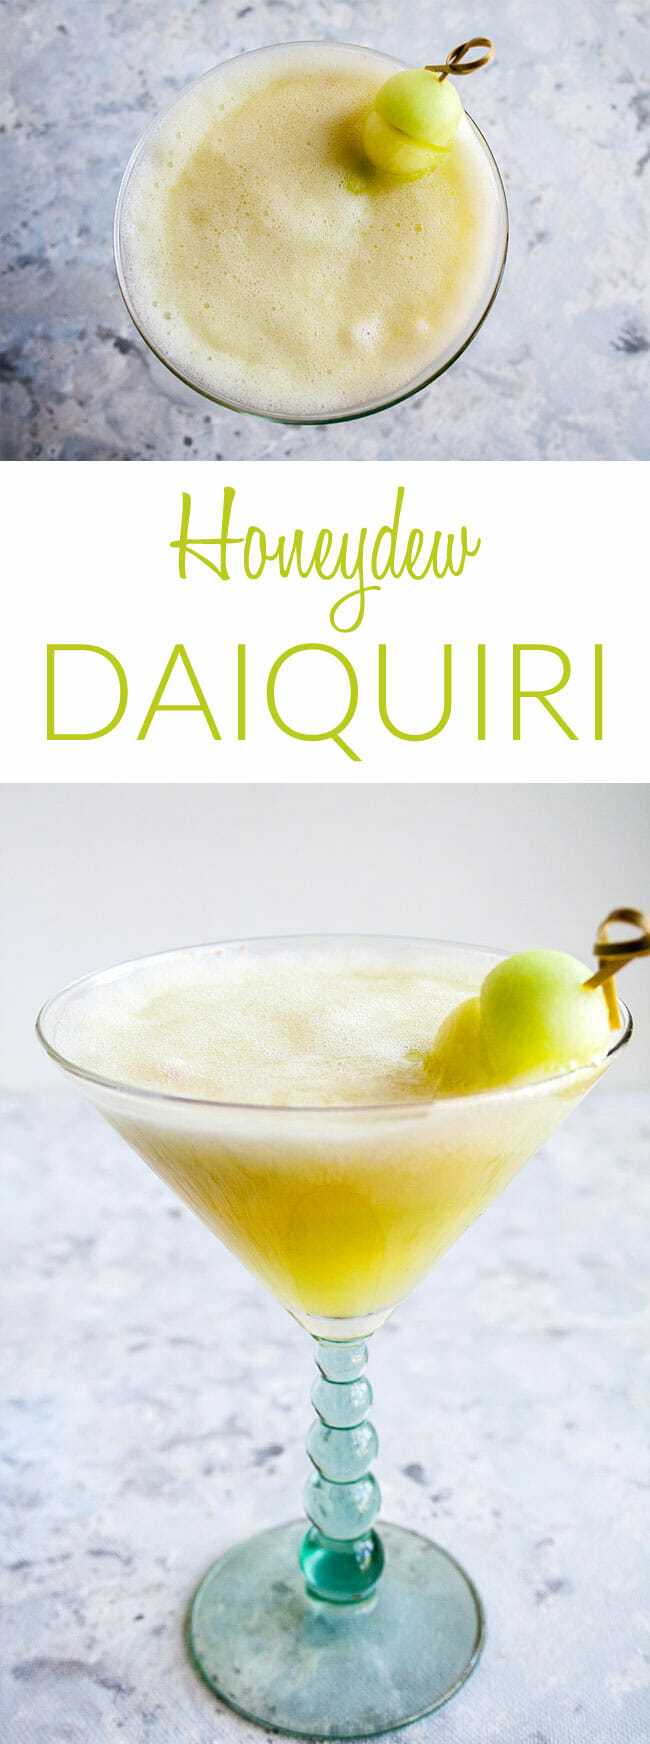 Honeydew Daiquiri collage photo with text.